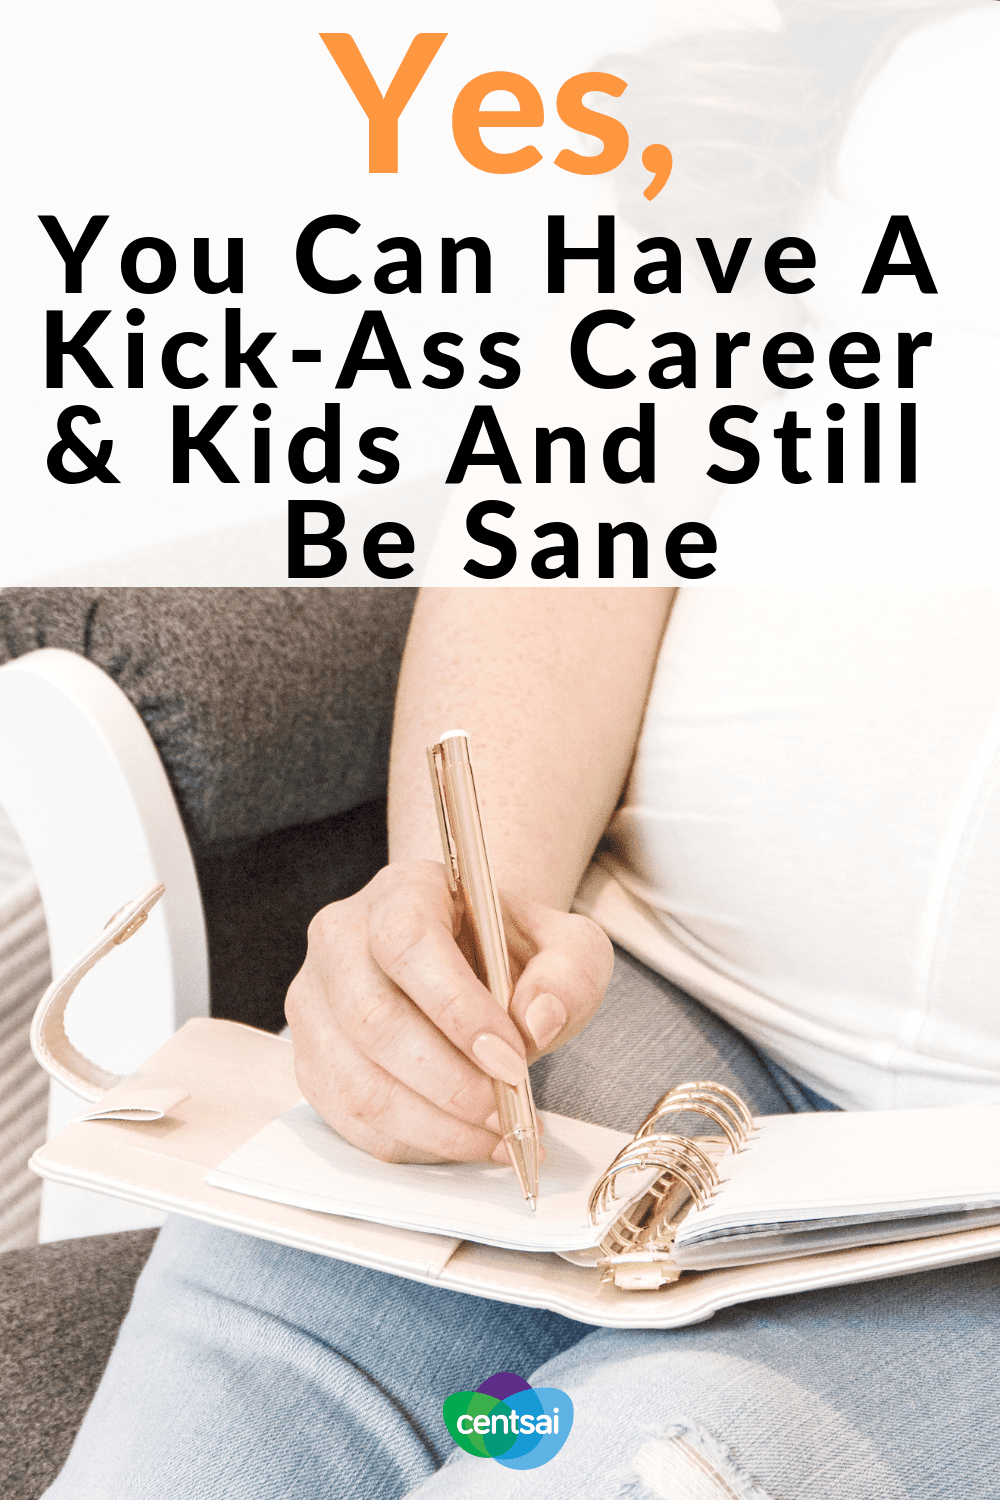 Yes, You Can Have A Kick-Ass Career & Kids And Still Be Sane. Trying to balance a career with raising children? It isn't easy, but you can do it. Learn how one mom juggles it all as an entrepreneur. #entrepreneur #career #kids #workingmom #parenting #parentingtips